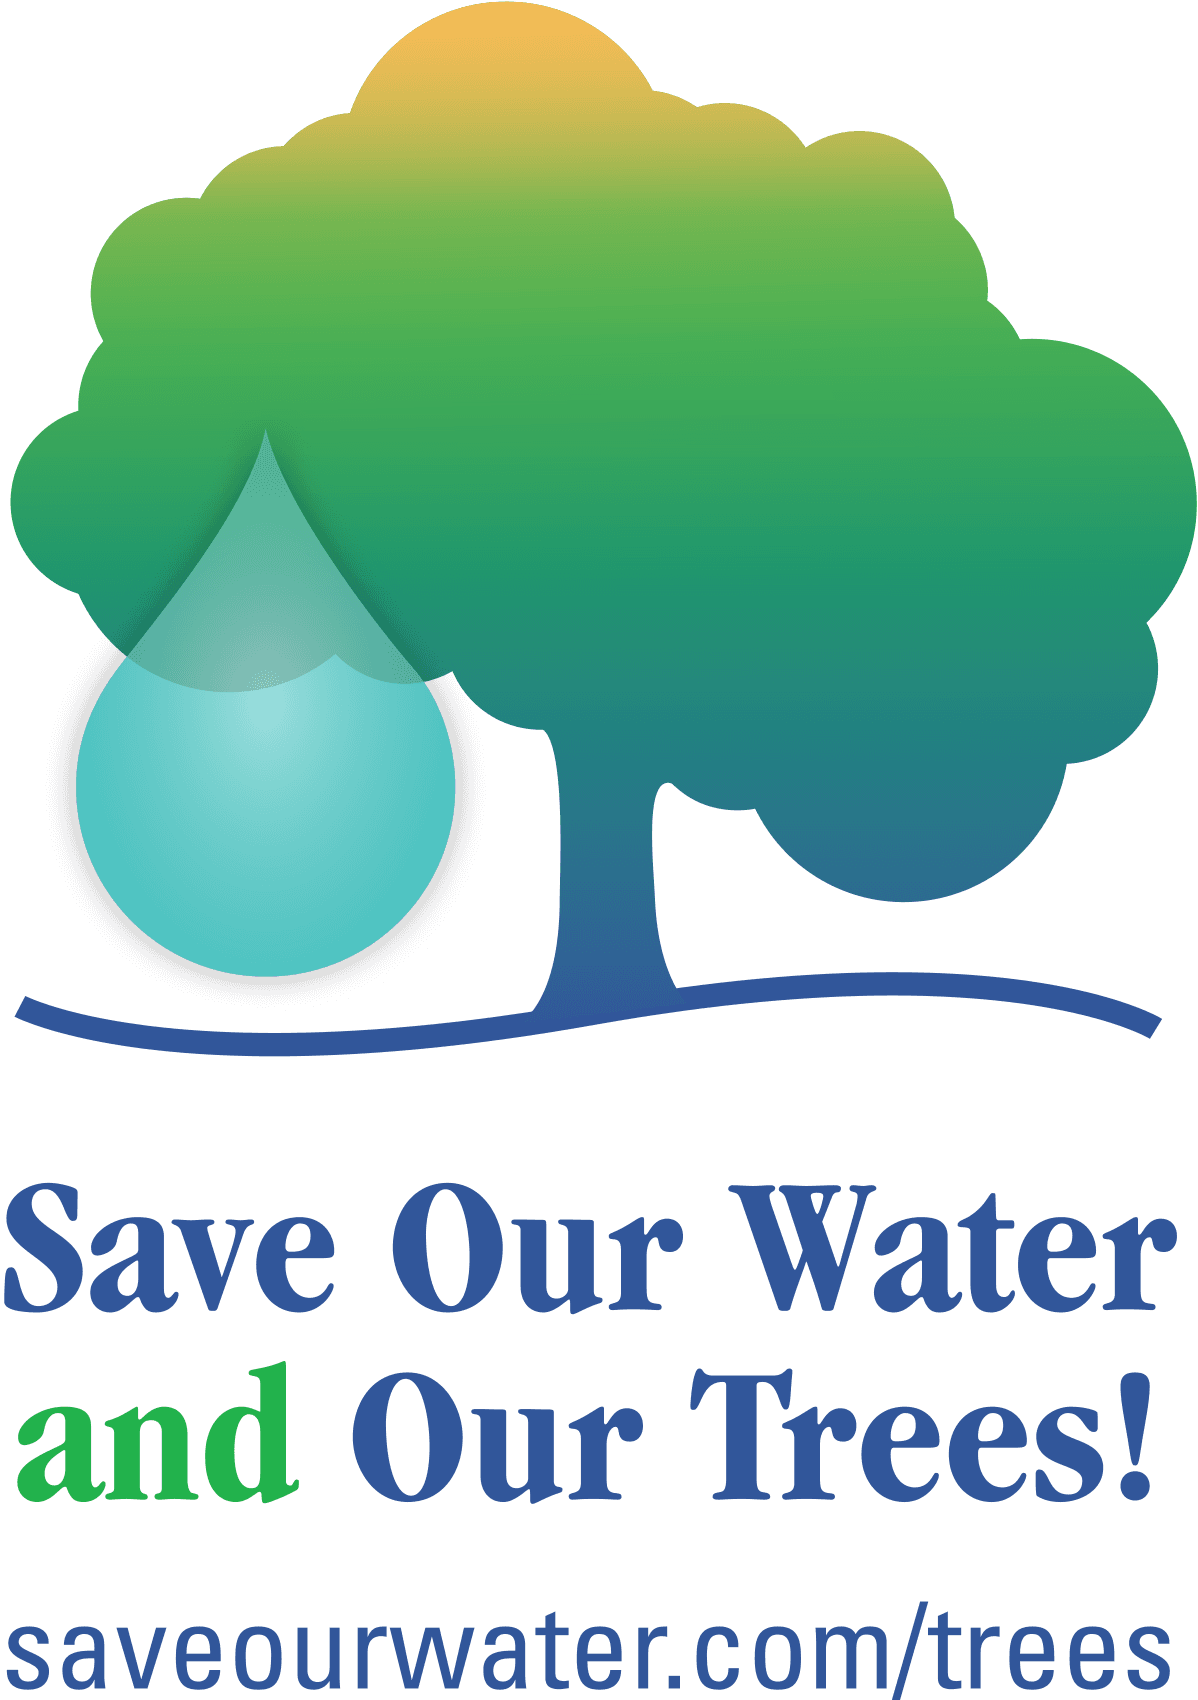 Save Our Water and Our Trees